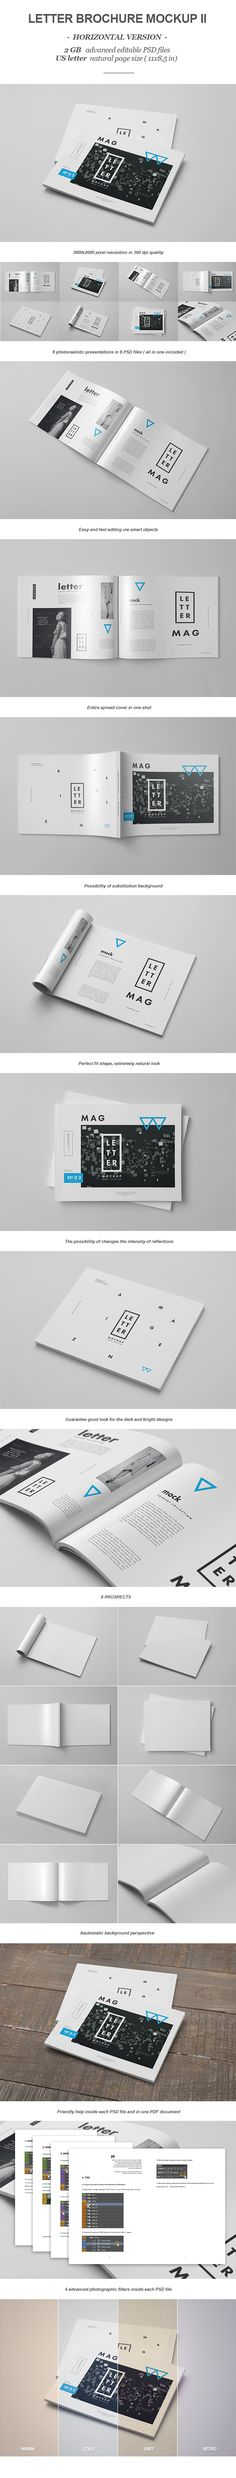 Photorealistic LETTER magazine/borchure/catalog mock-up. So much in 9 PSD files. Easy to use with smart objects. Just open the psd file and then replace all of the objects. Includes a help file in PDF format and assistance inside the PSD files.